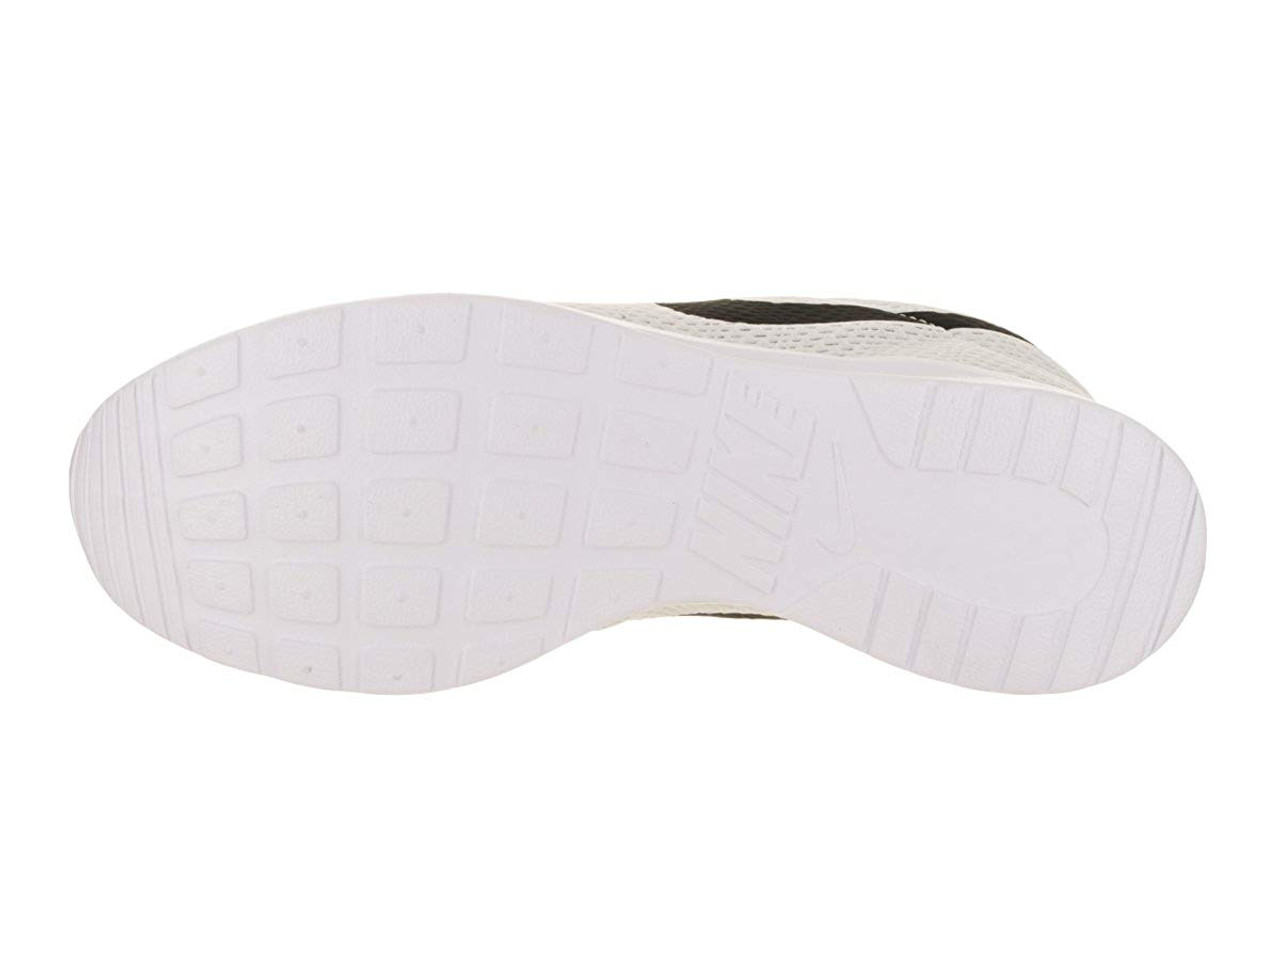 on sale 5e021 9c5a8 ... NIKE Mens Flex Fury 2 Fitsole Lightweight Running Shoes~pp-1c8fae70 ...